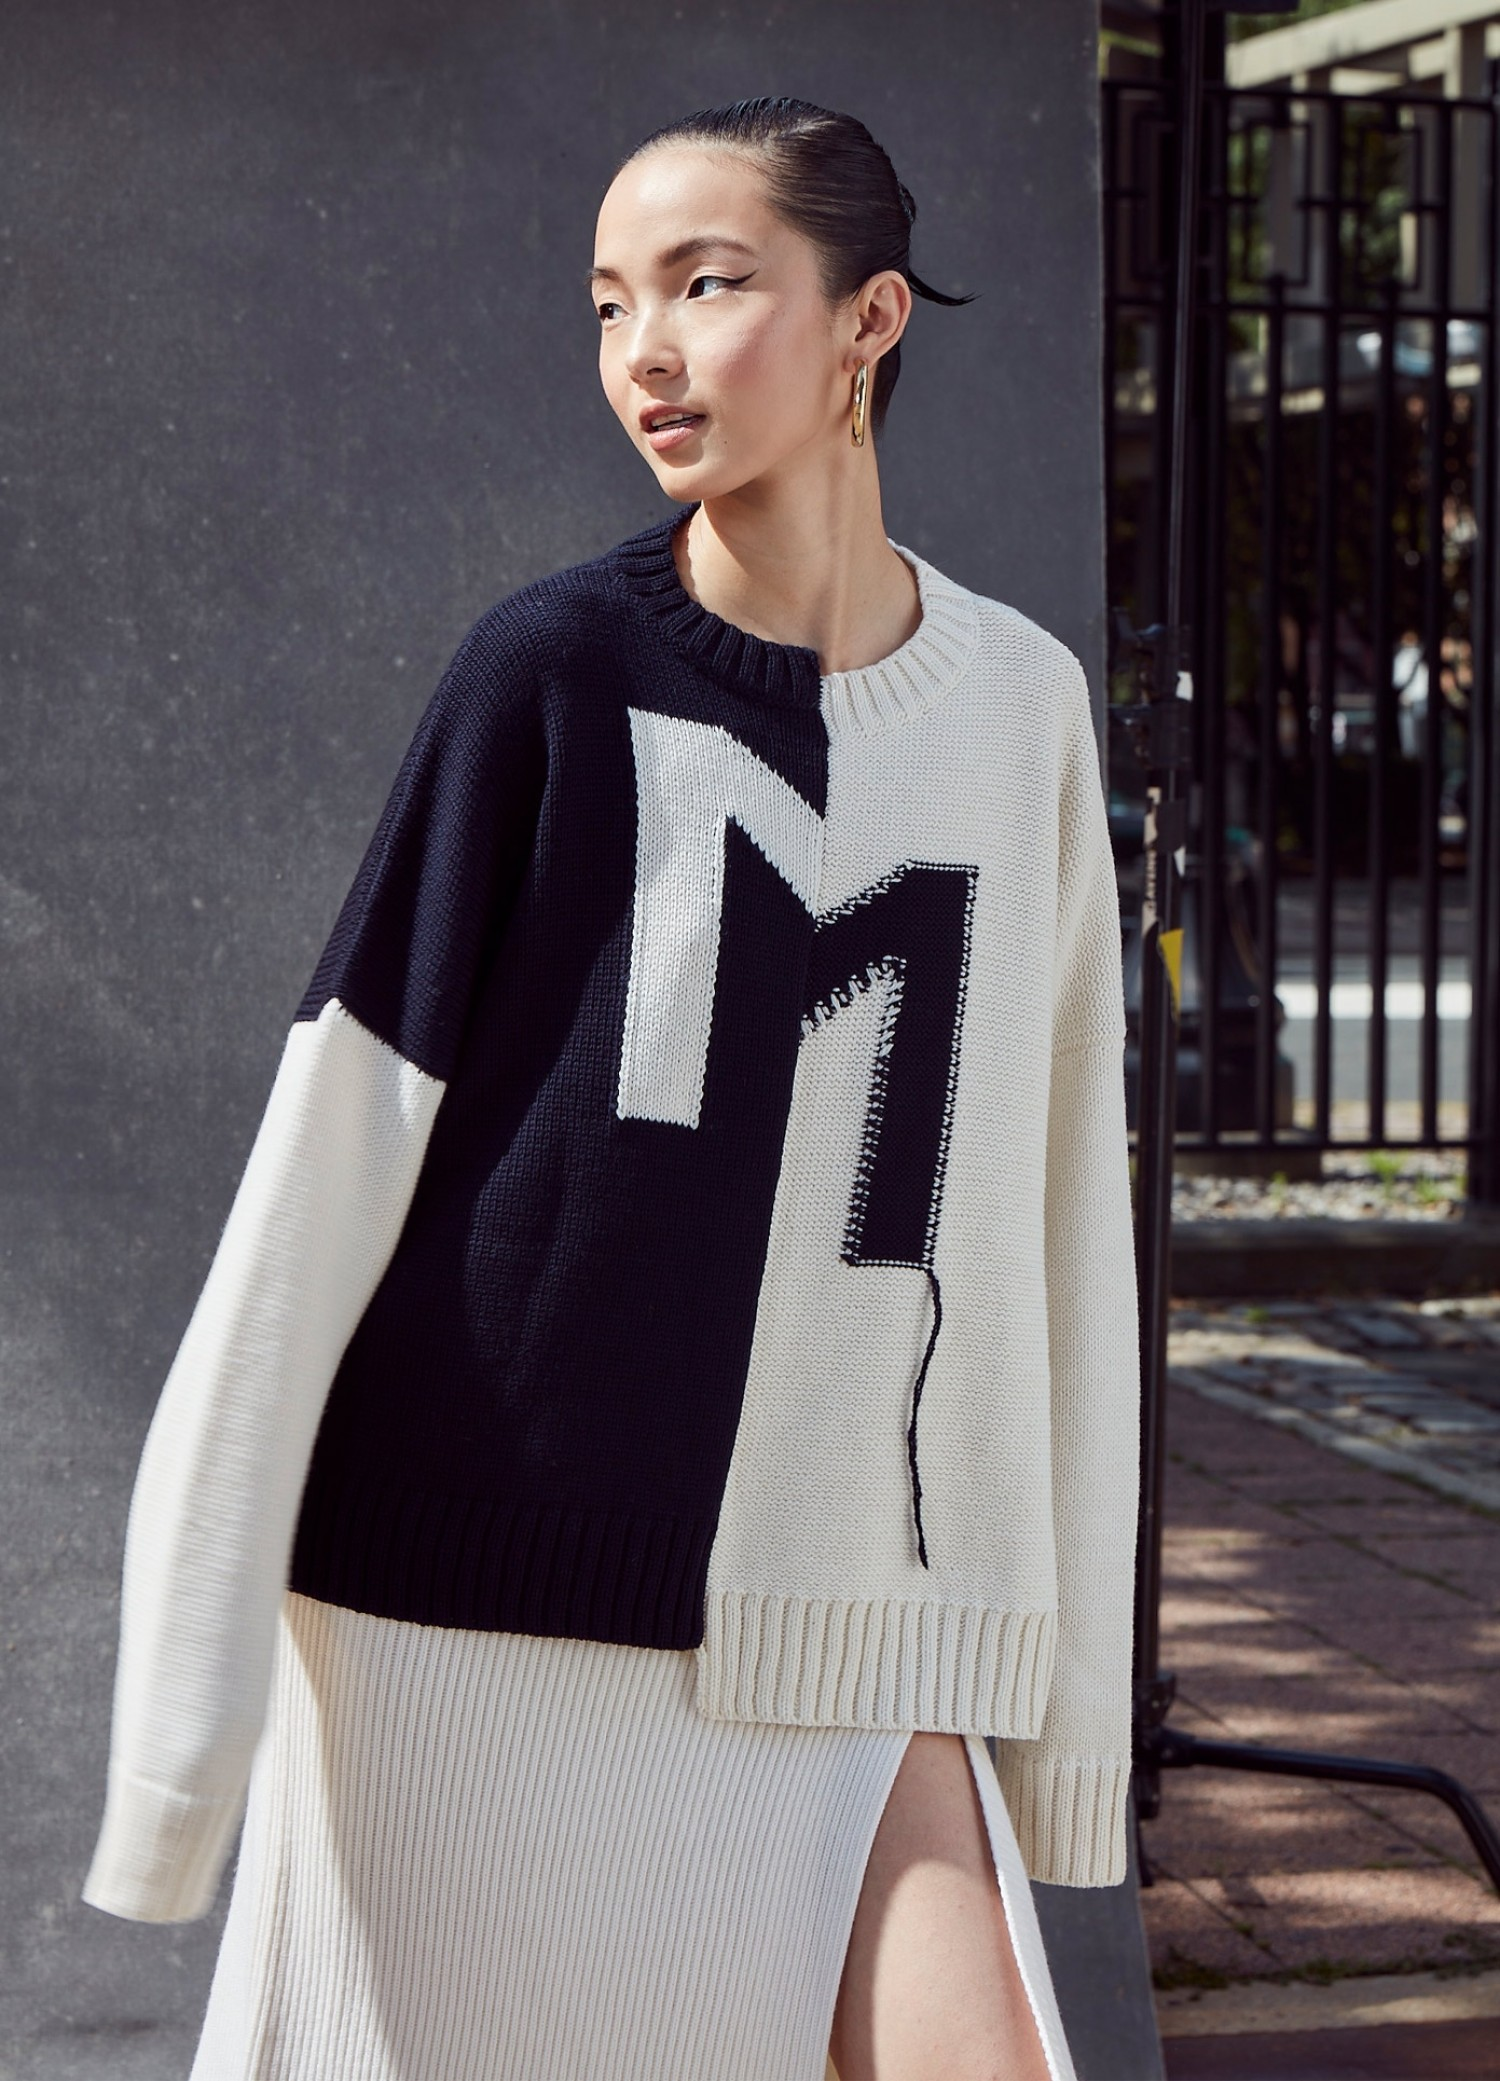 MONSE Crooked M Pullover Sweater in Ivory and Midnight on Model Front View